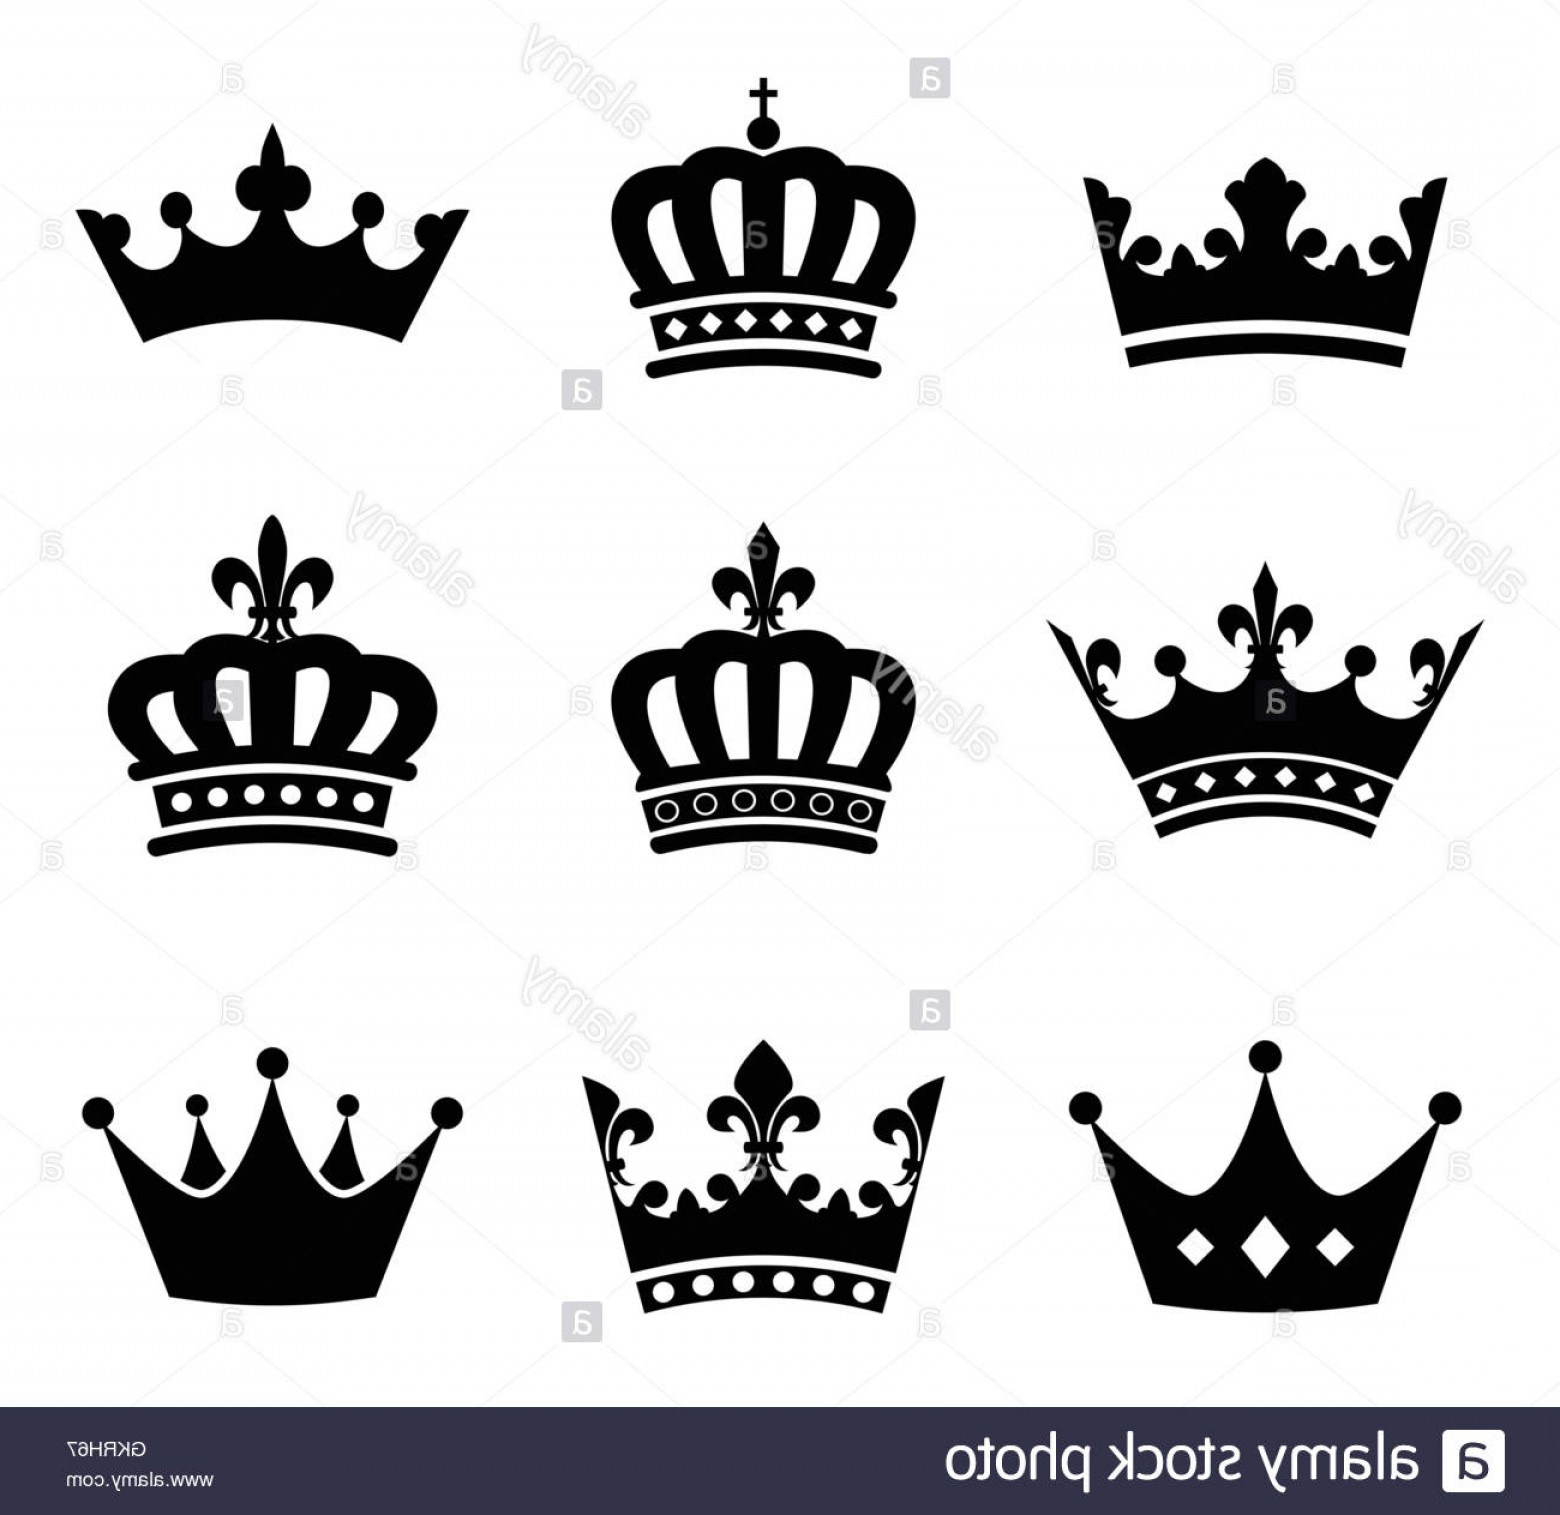 King And Queen Vector: Stock Photo Queen Sign Emperor King Icon Princess Pictogram Symbol Pictograph